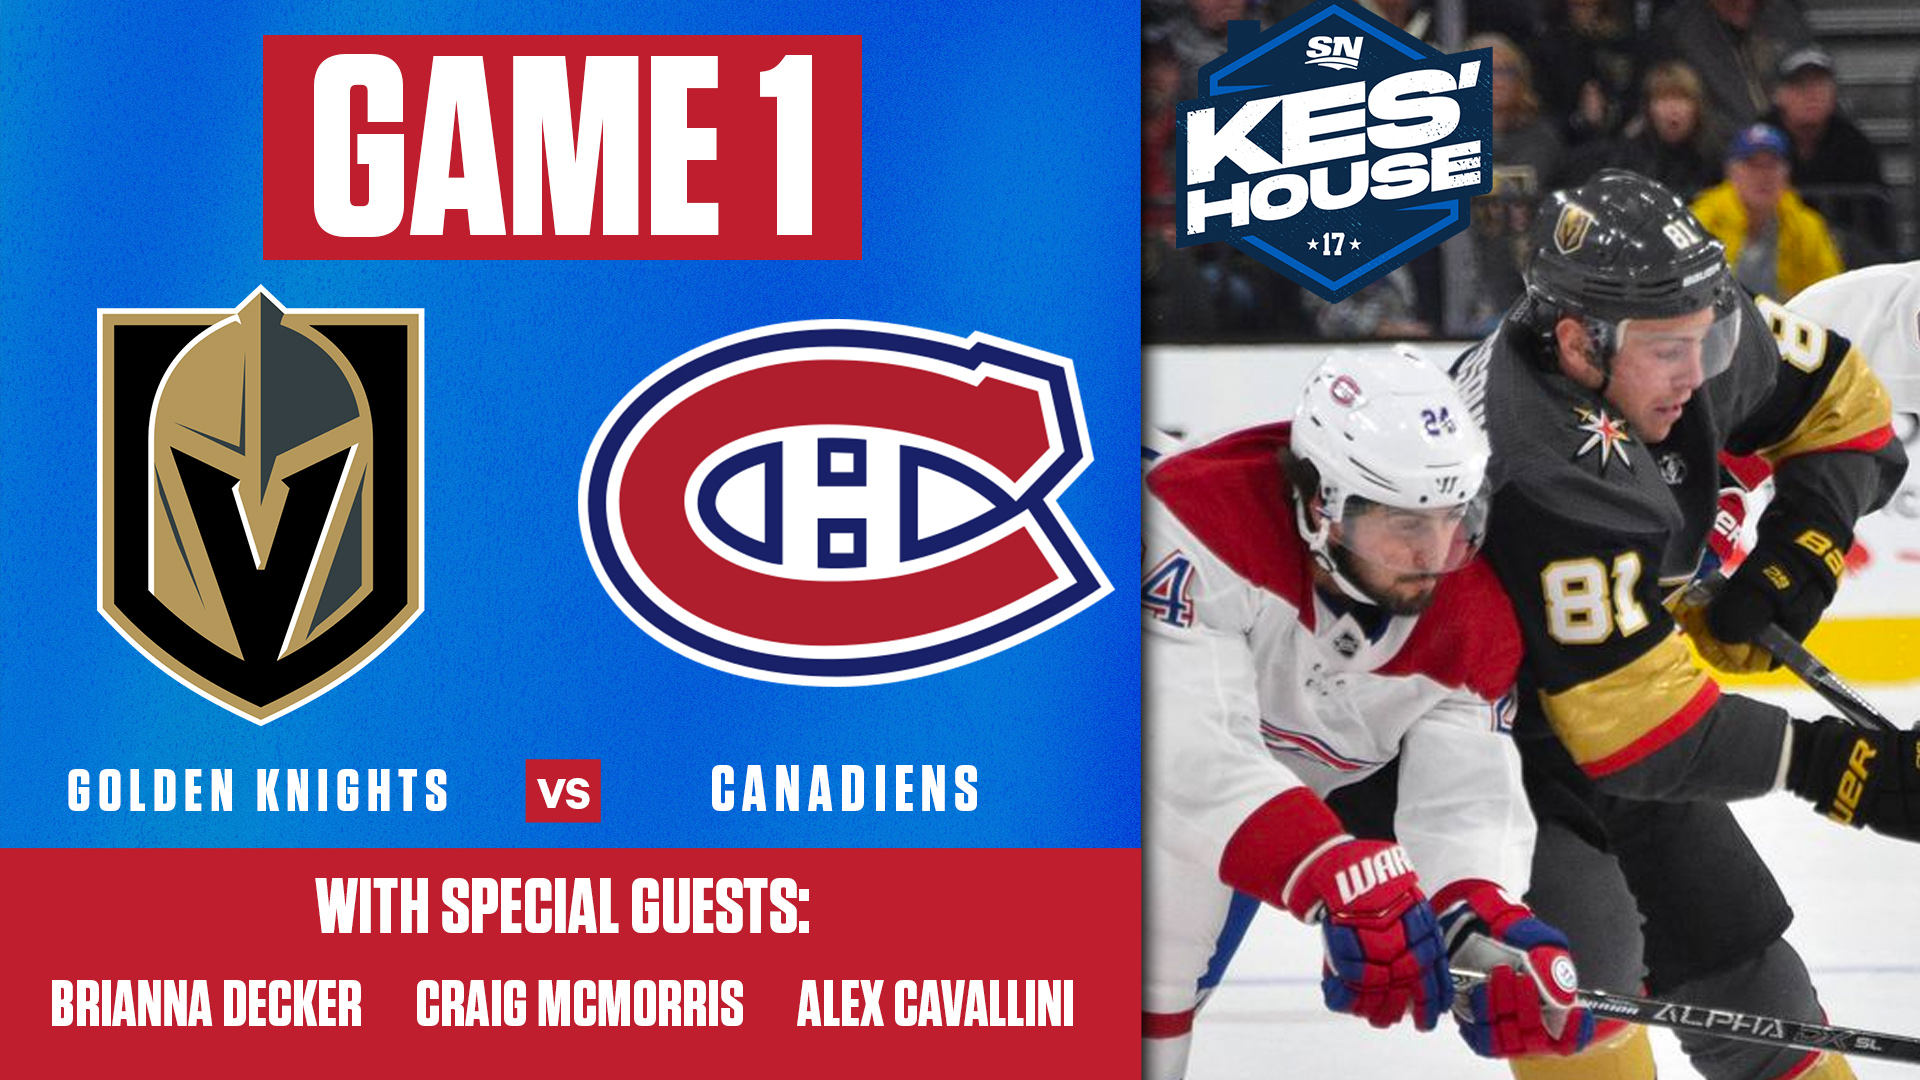 Watch Live: Game 1 of Canadiens vs Golden Knights with Kes' House